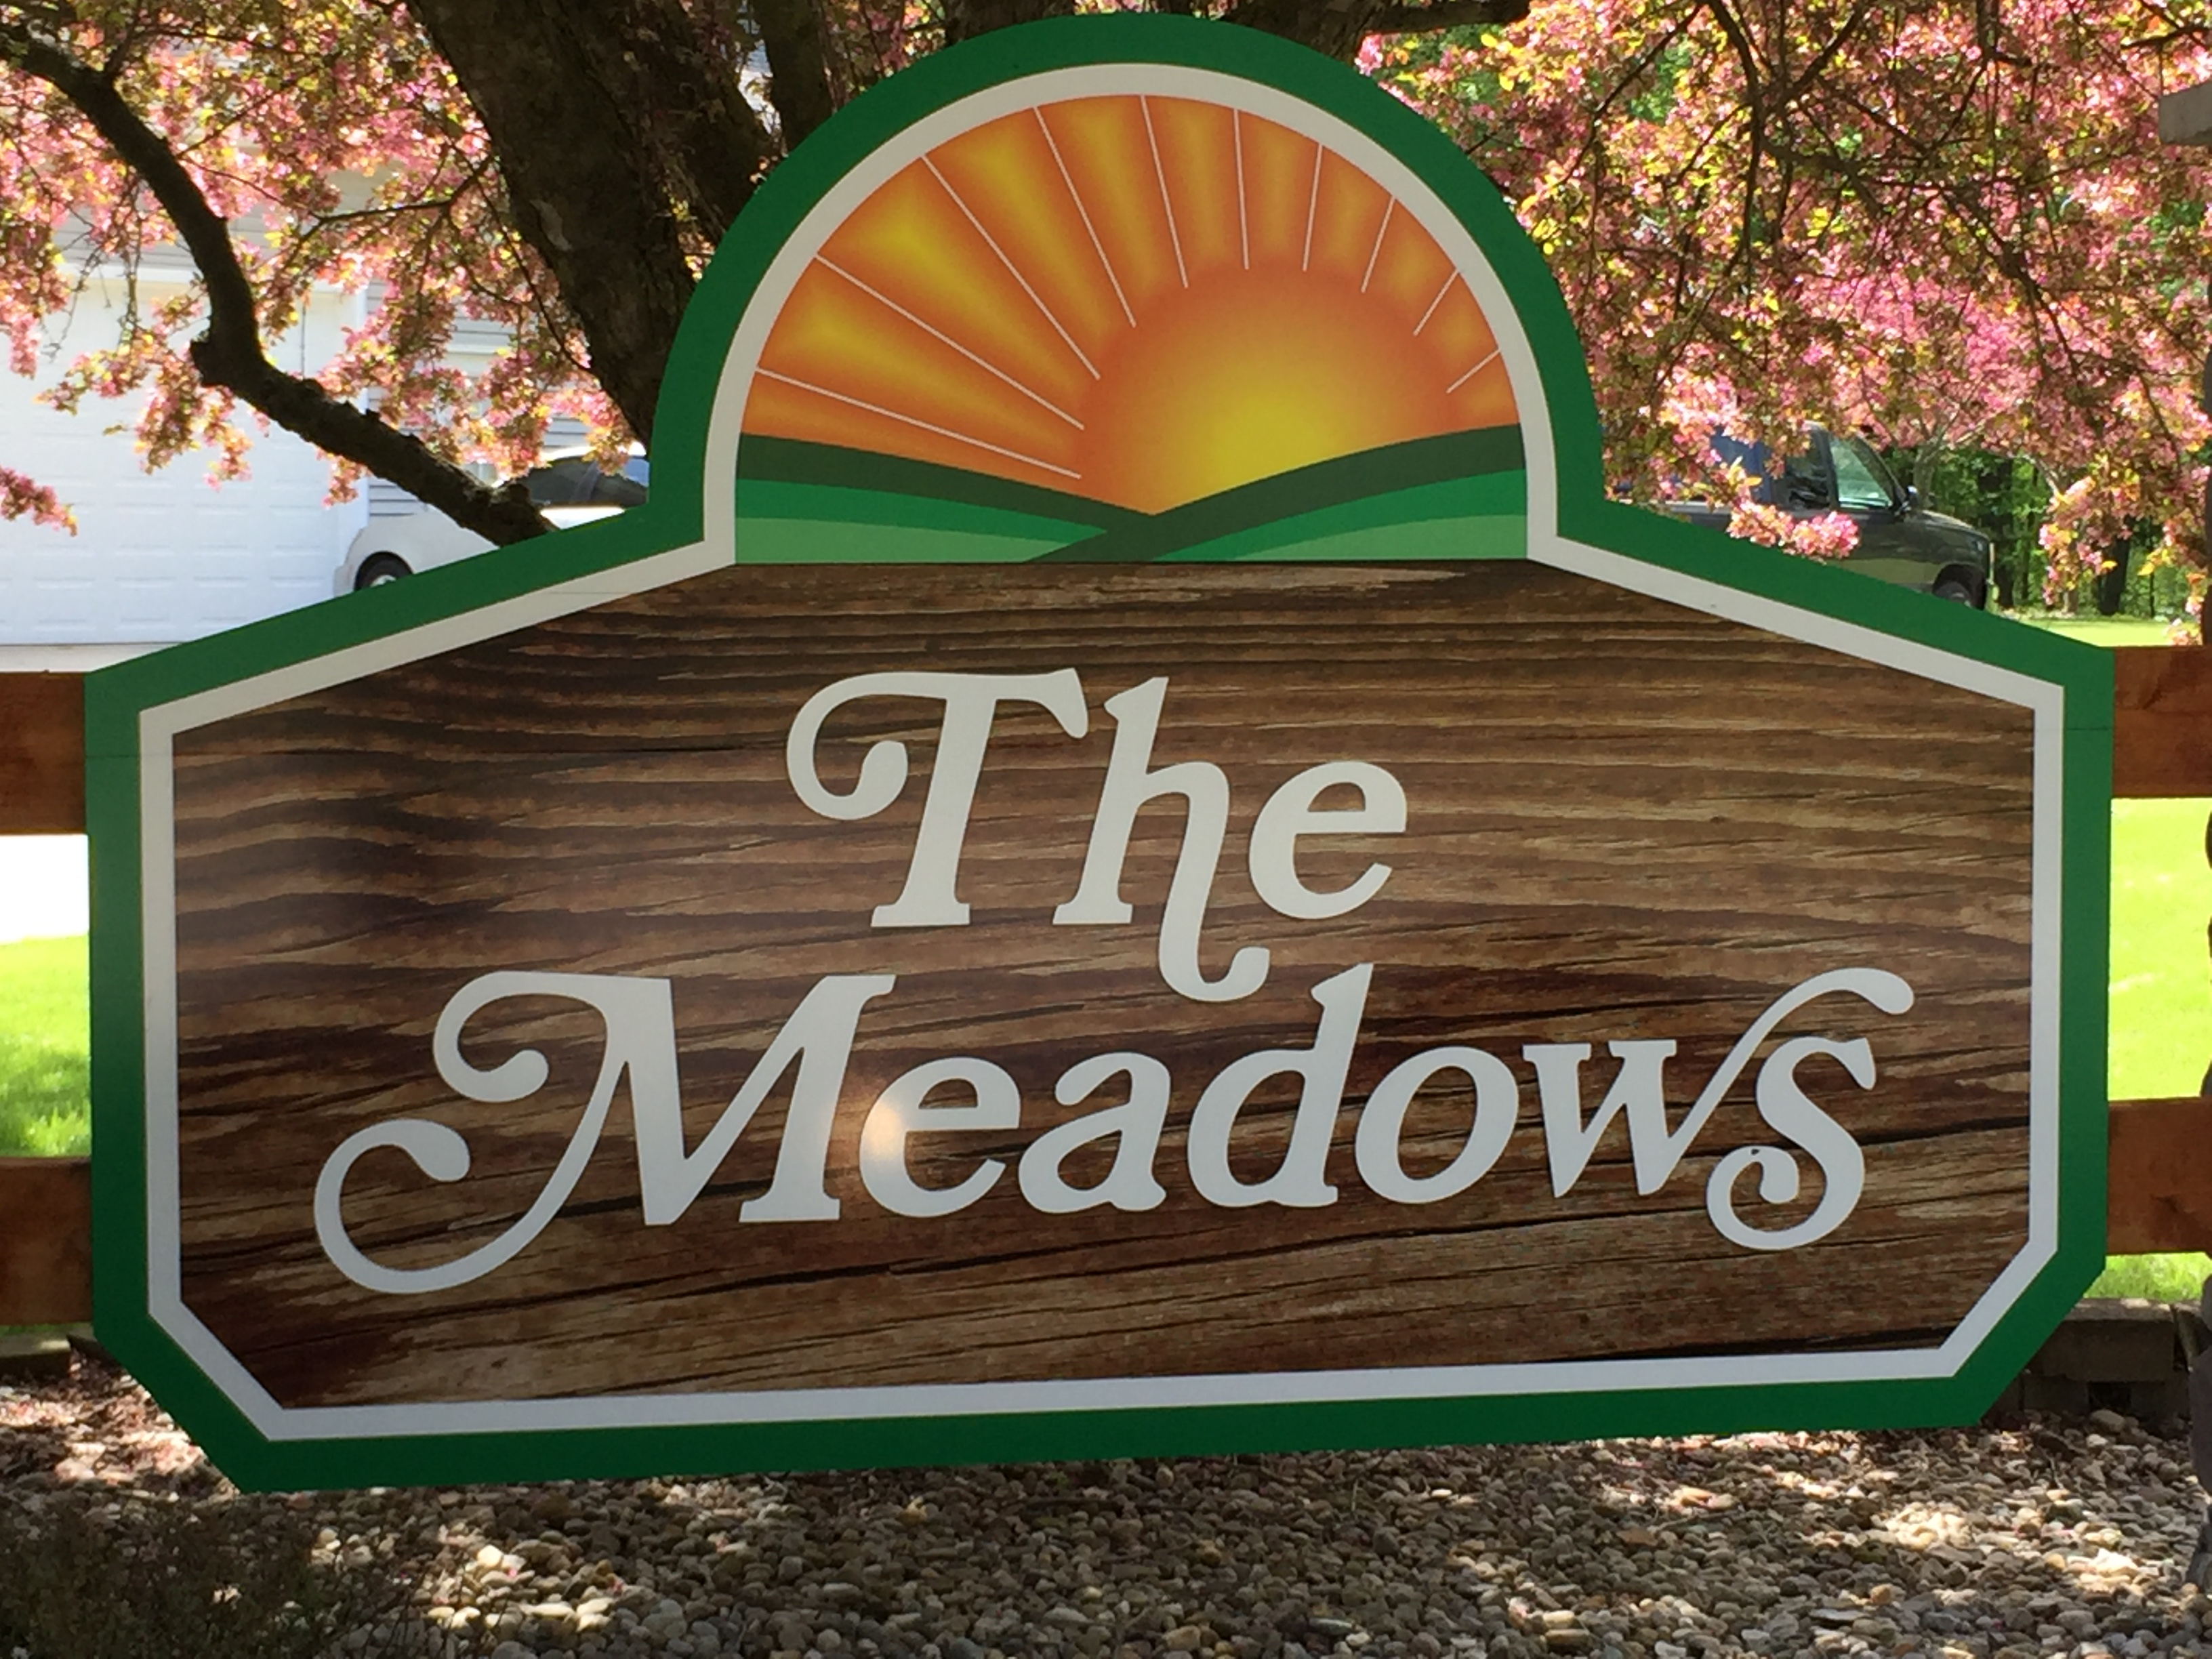 Warsaw Meadows Property Owners Association image